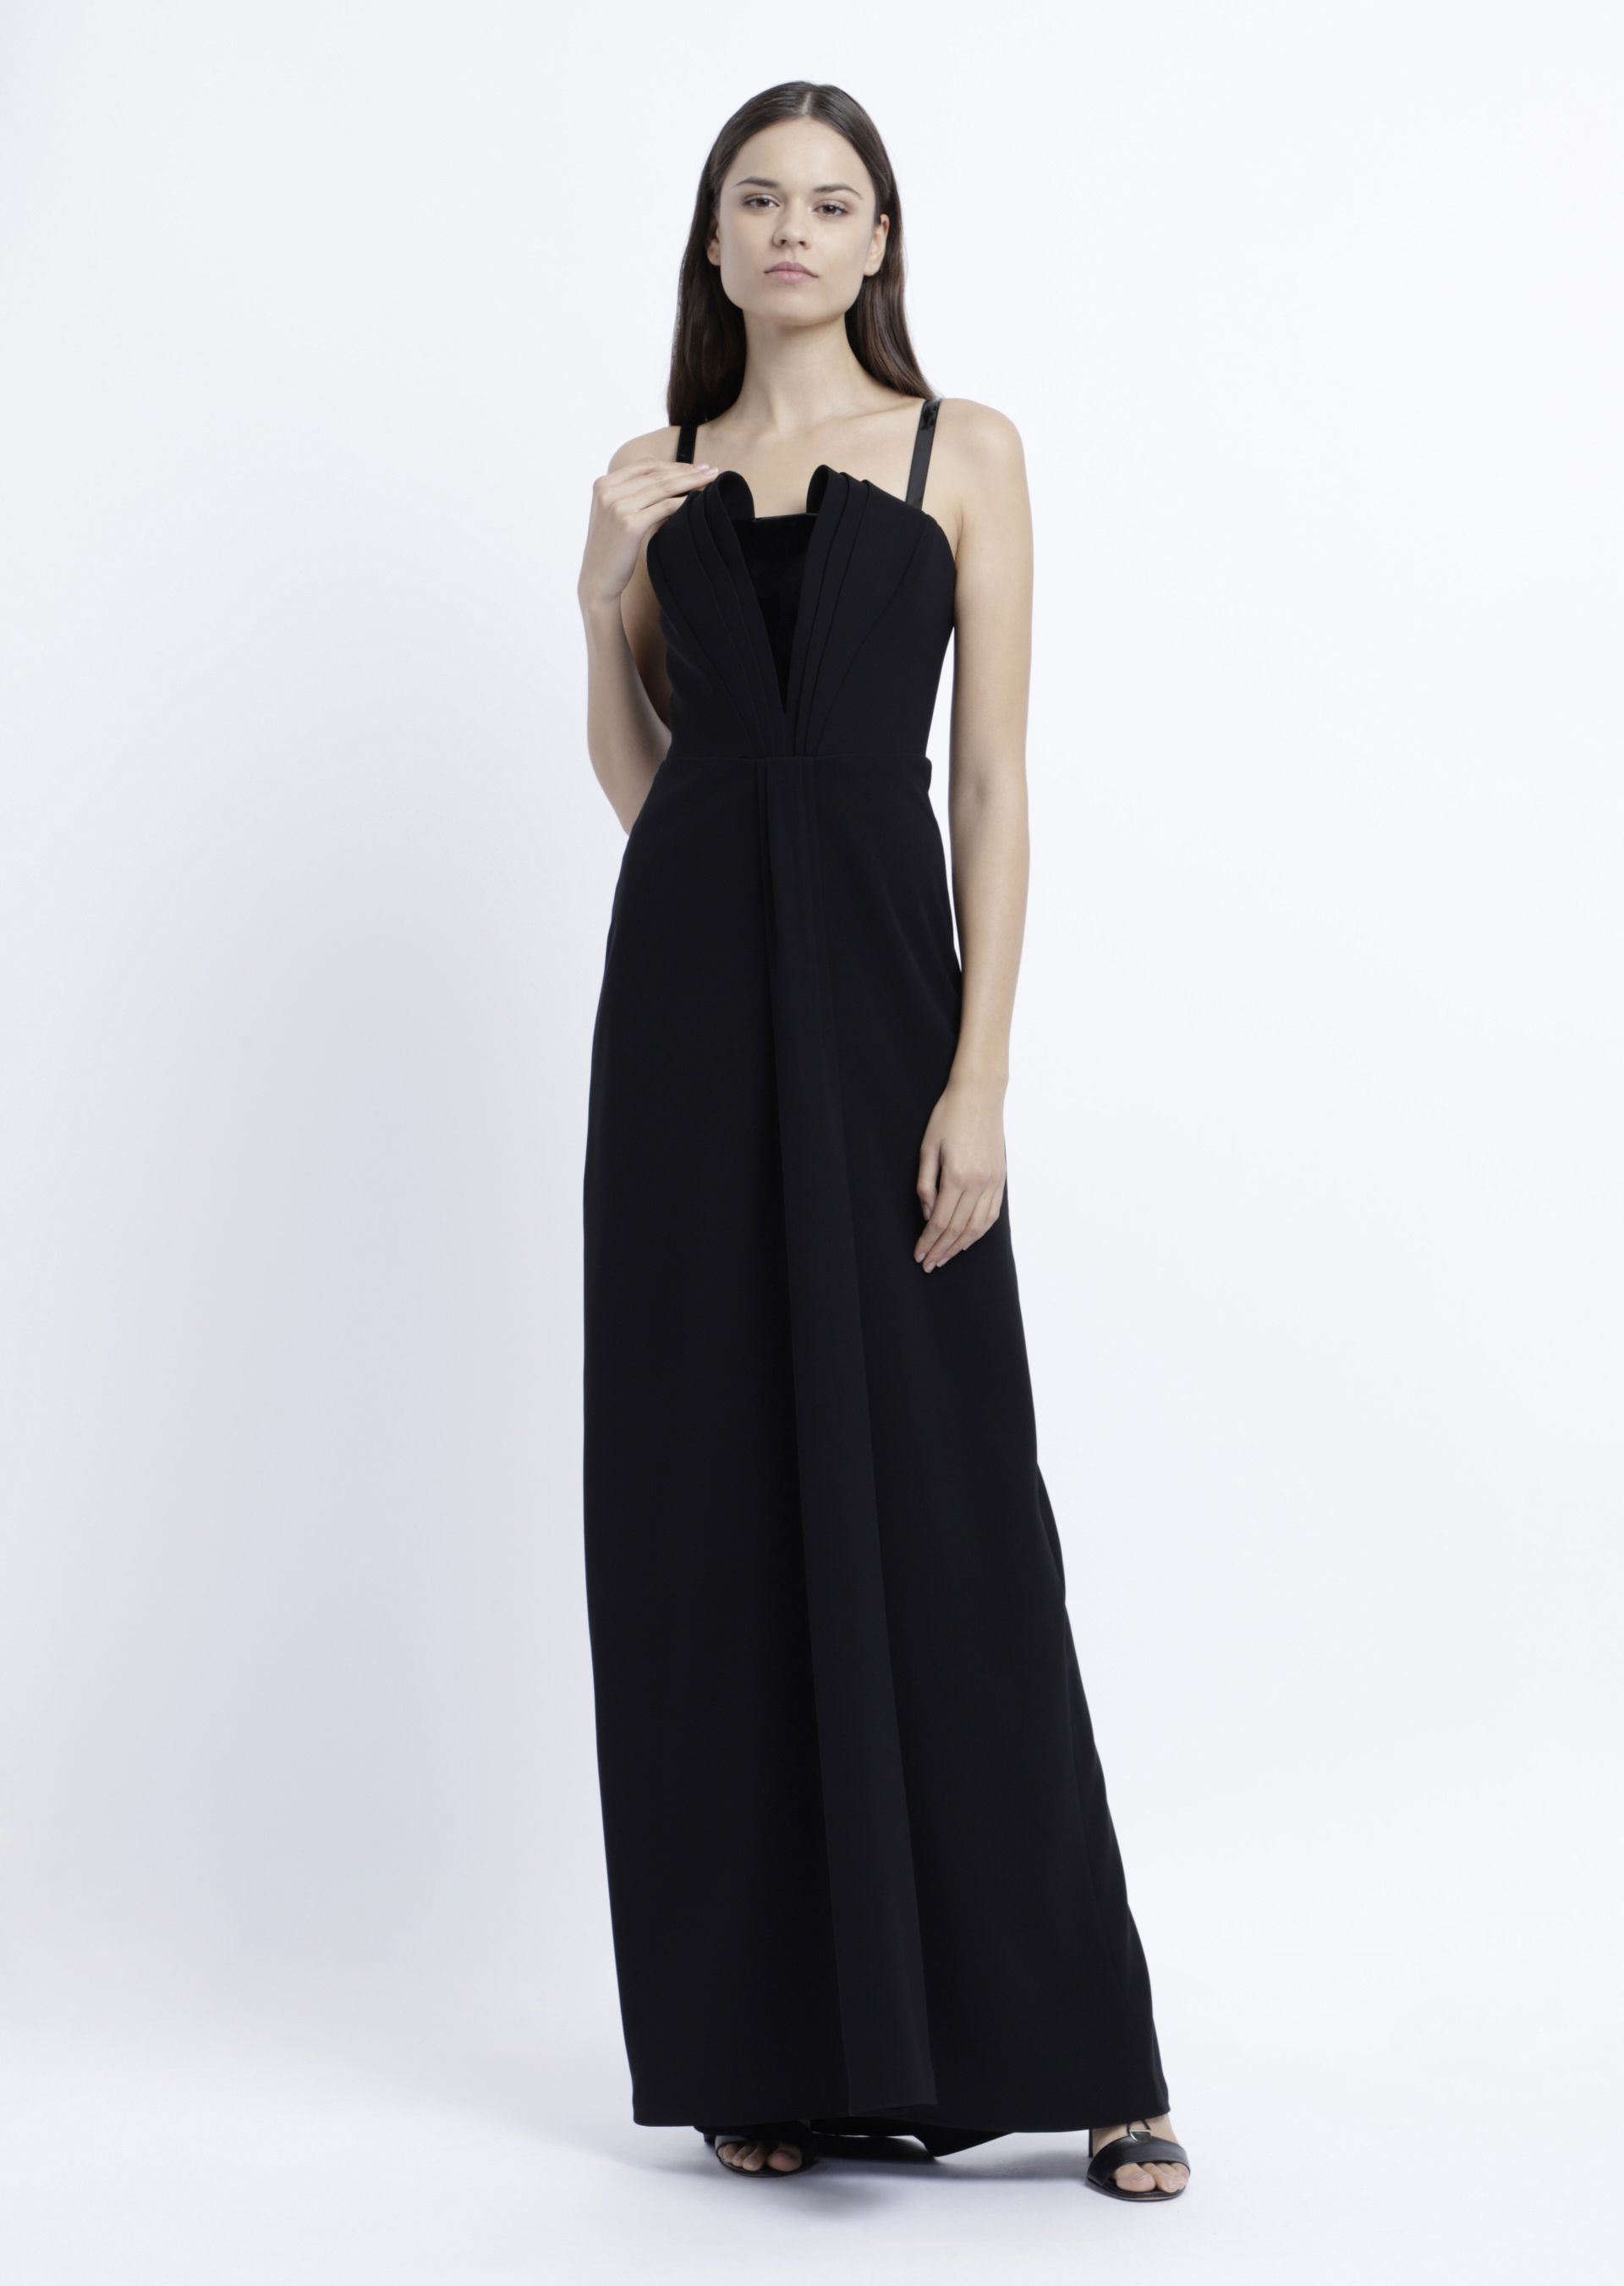 Sleeveless Molded A-Line Gown in Black from ARMANI.COM